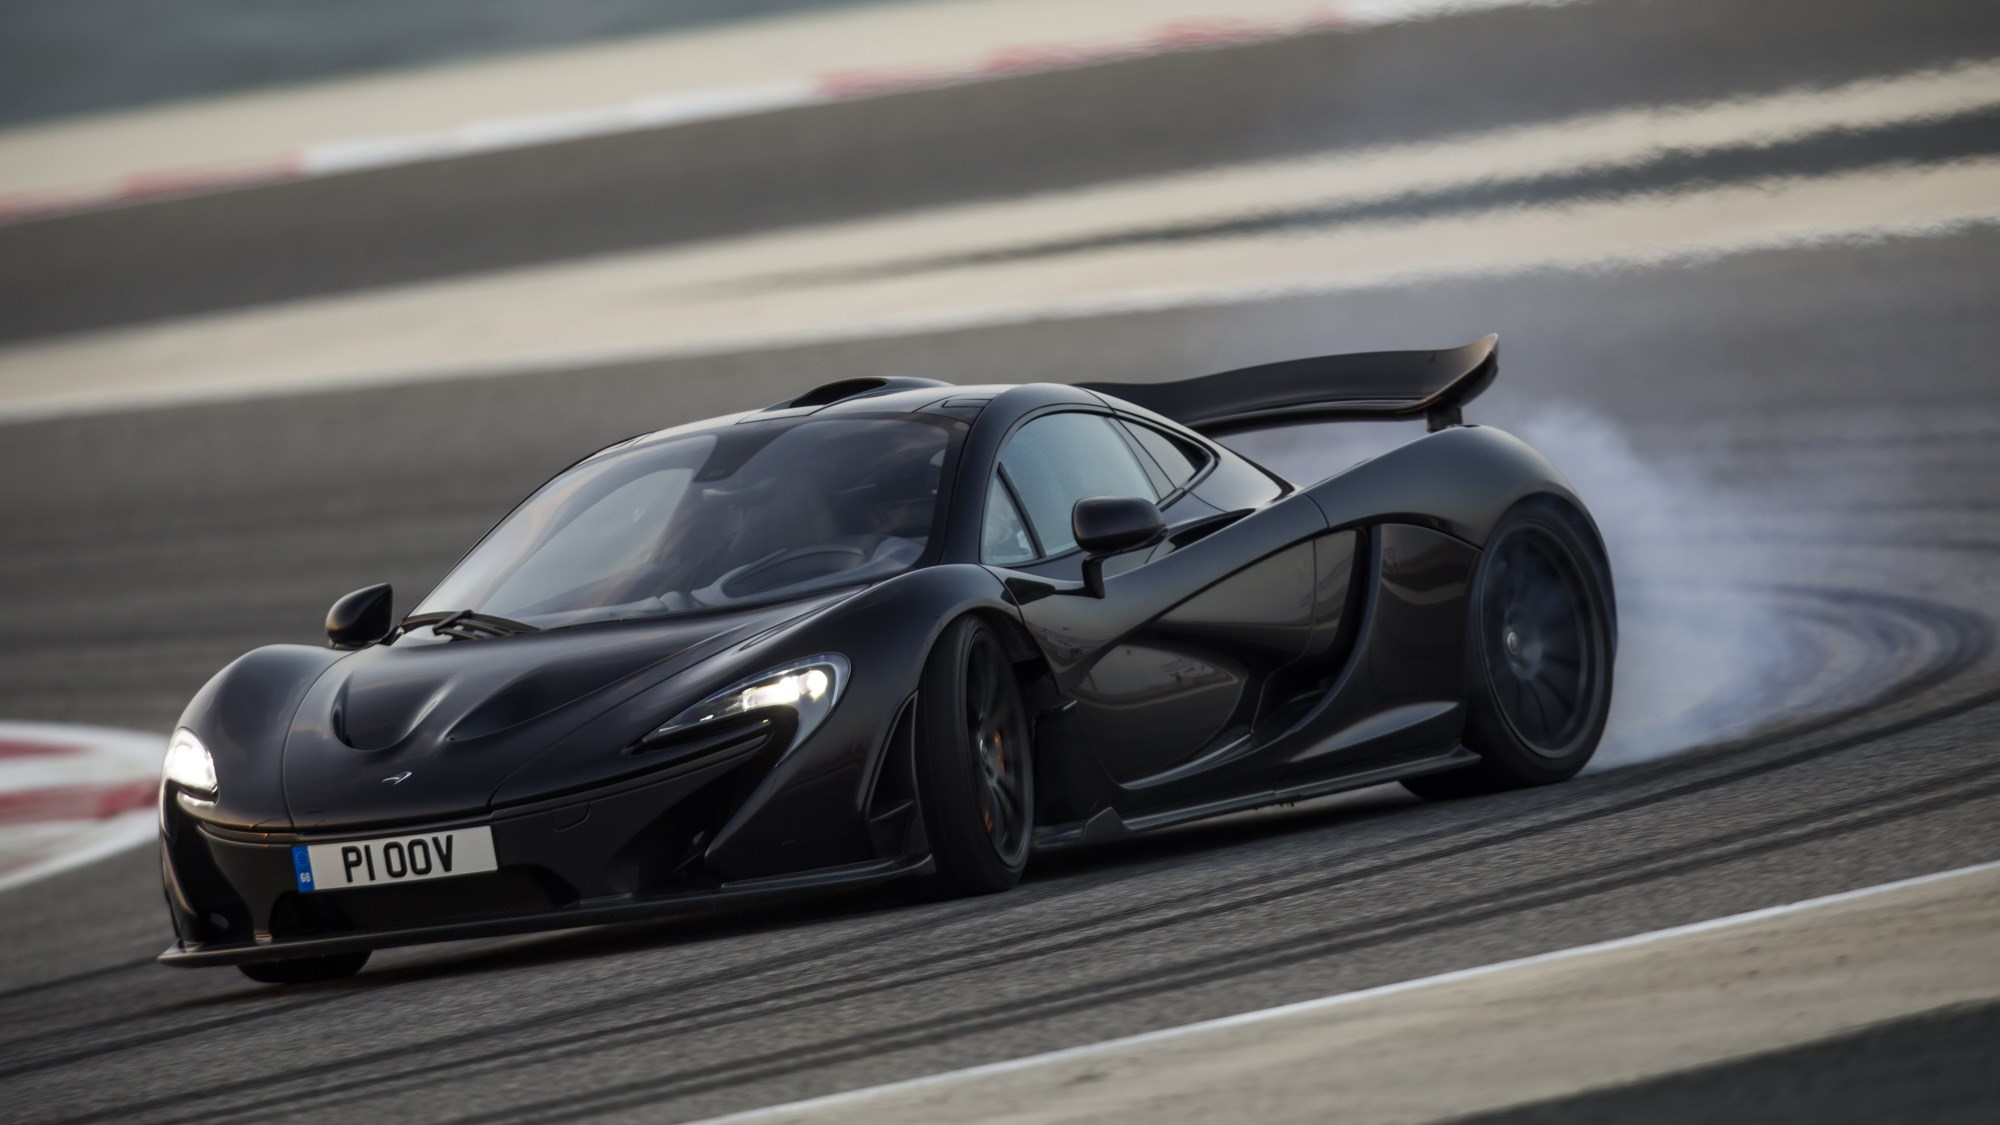 McLaren P1 review, Bahrain, black, front view, oversteer, tyres smoking